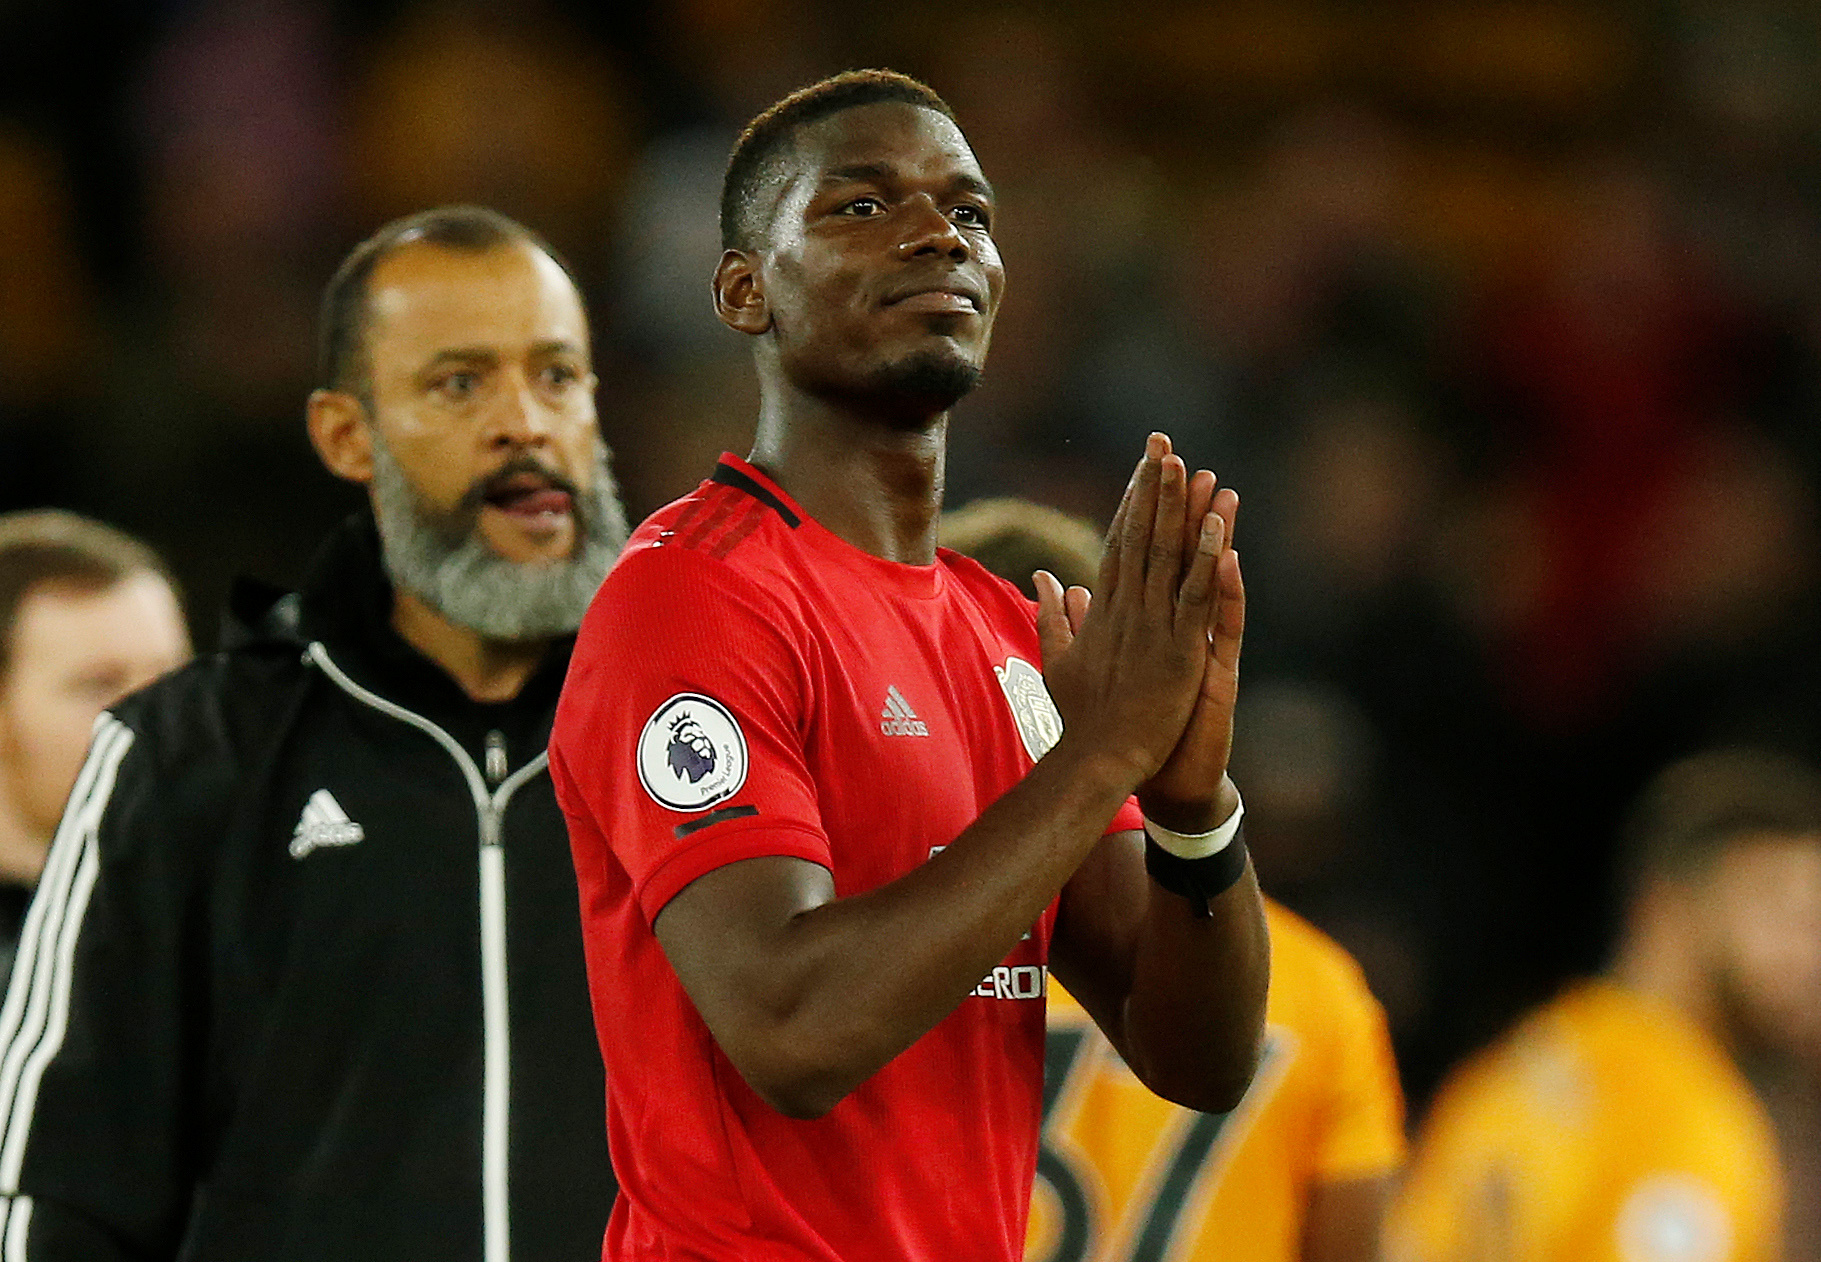 What Pogba did after missing the penalty against Wolves